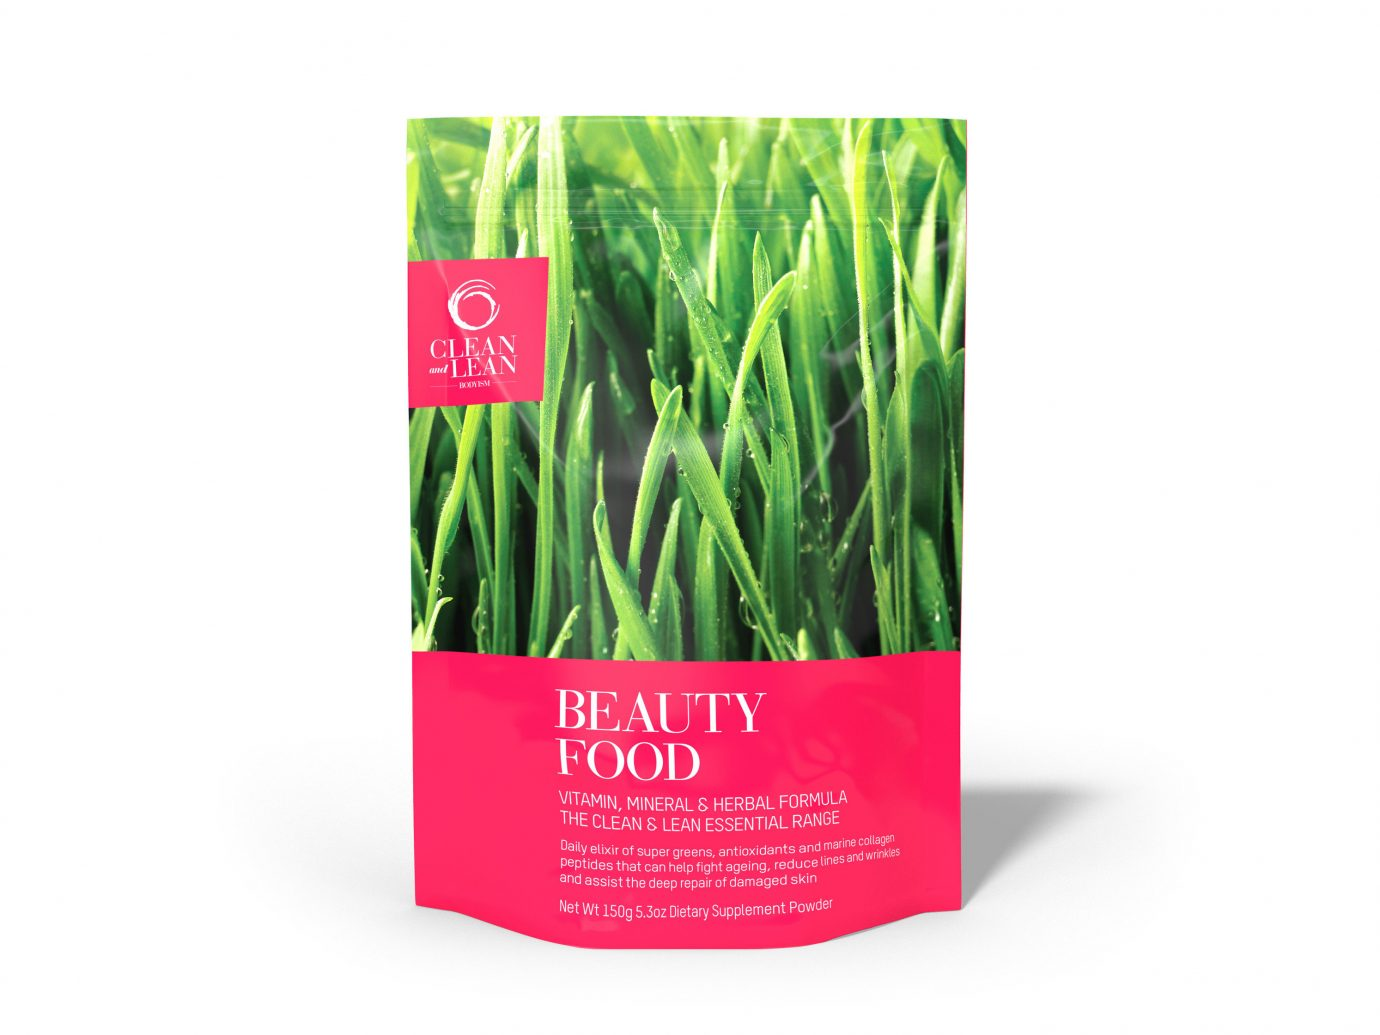 Travel Tips plant grass family food produce land plant flowering plant magenta herb vegetable